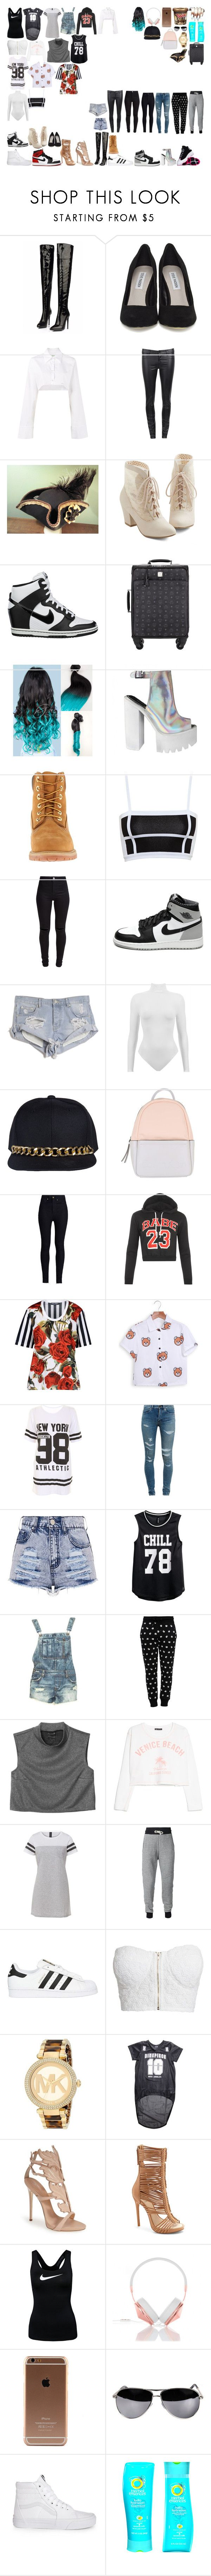 """Packing for Tour"" by kaelighoffical ❤ liked on Polyvore featuring Steve Madden, Off-White, J Brand, But Another Innocent Tale, NIKE, MCM, Timberland, Balmain, New Look and Retrò"